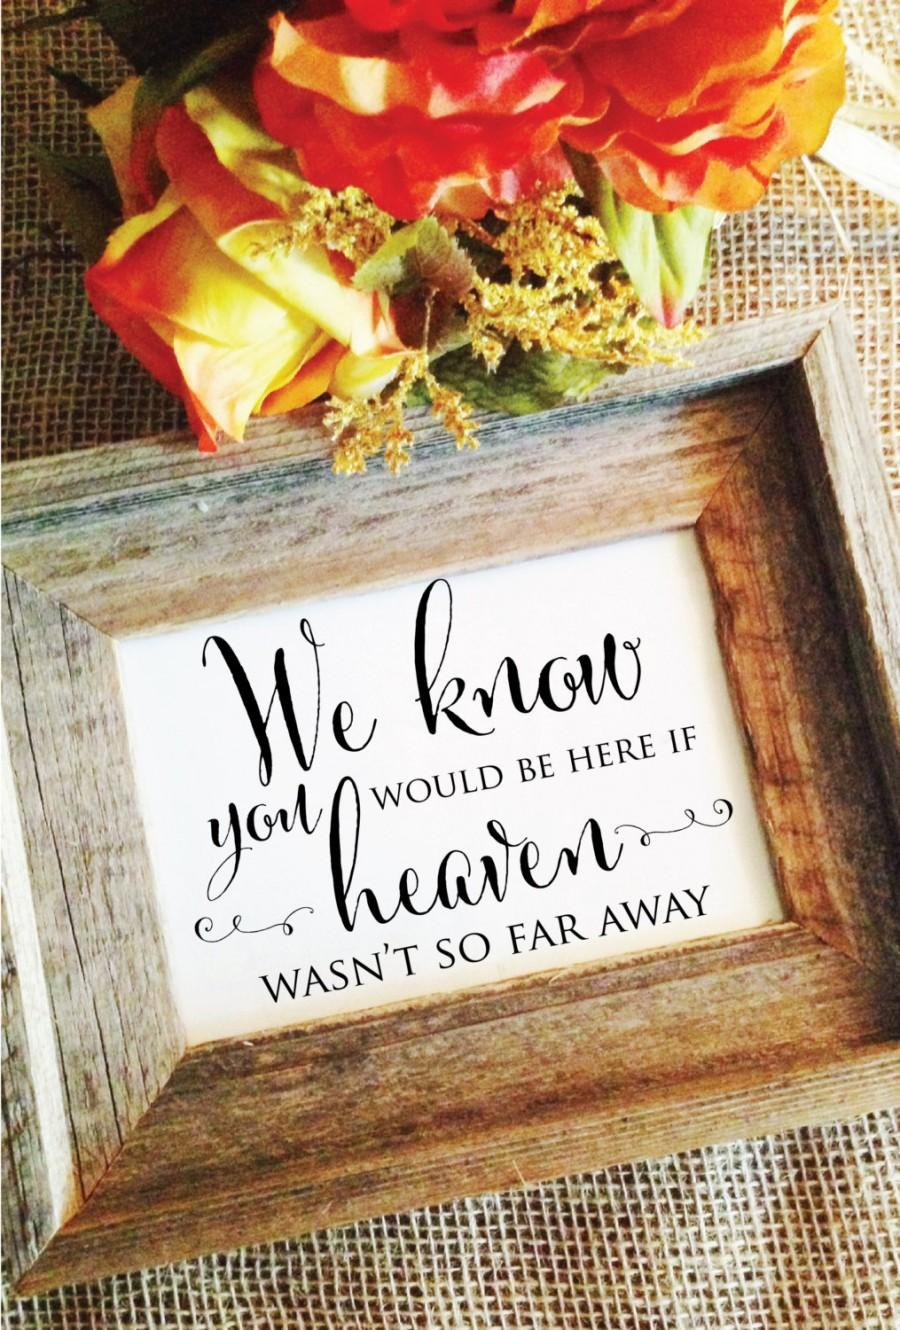 Düğün - We know you would be here wedding memorial sign wedding remembrance sign in memory of wedding sign Rustic wedding sign (No Frame)